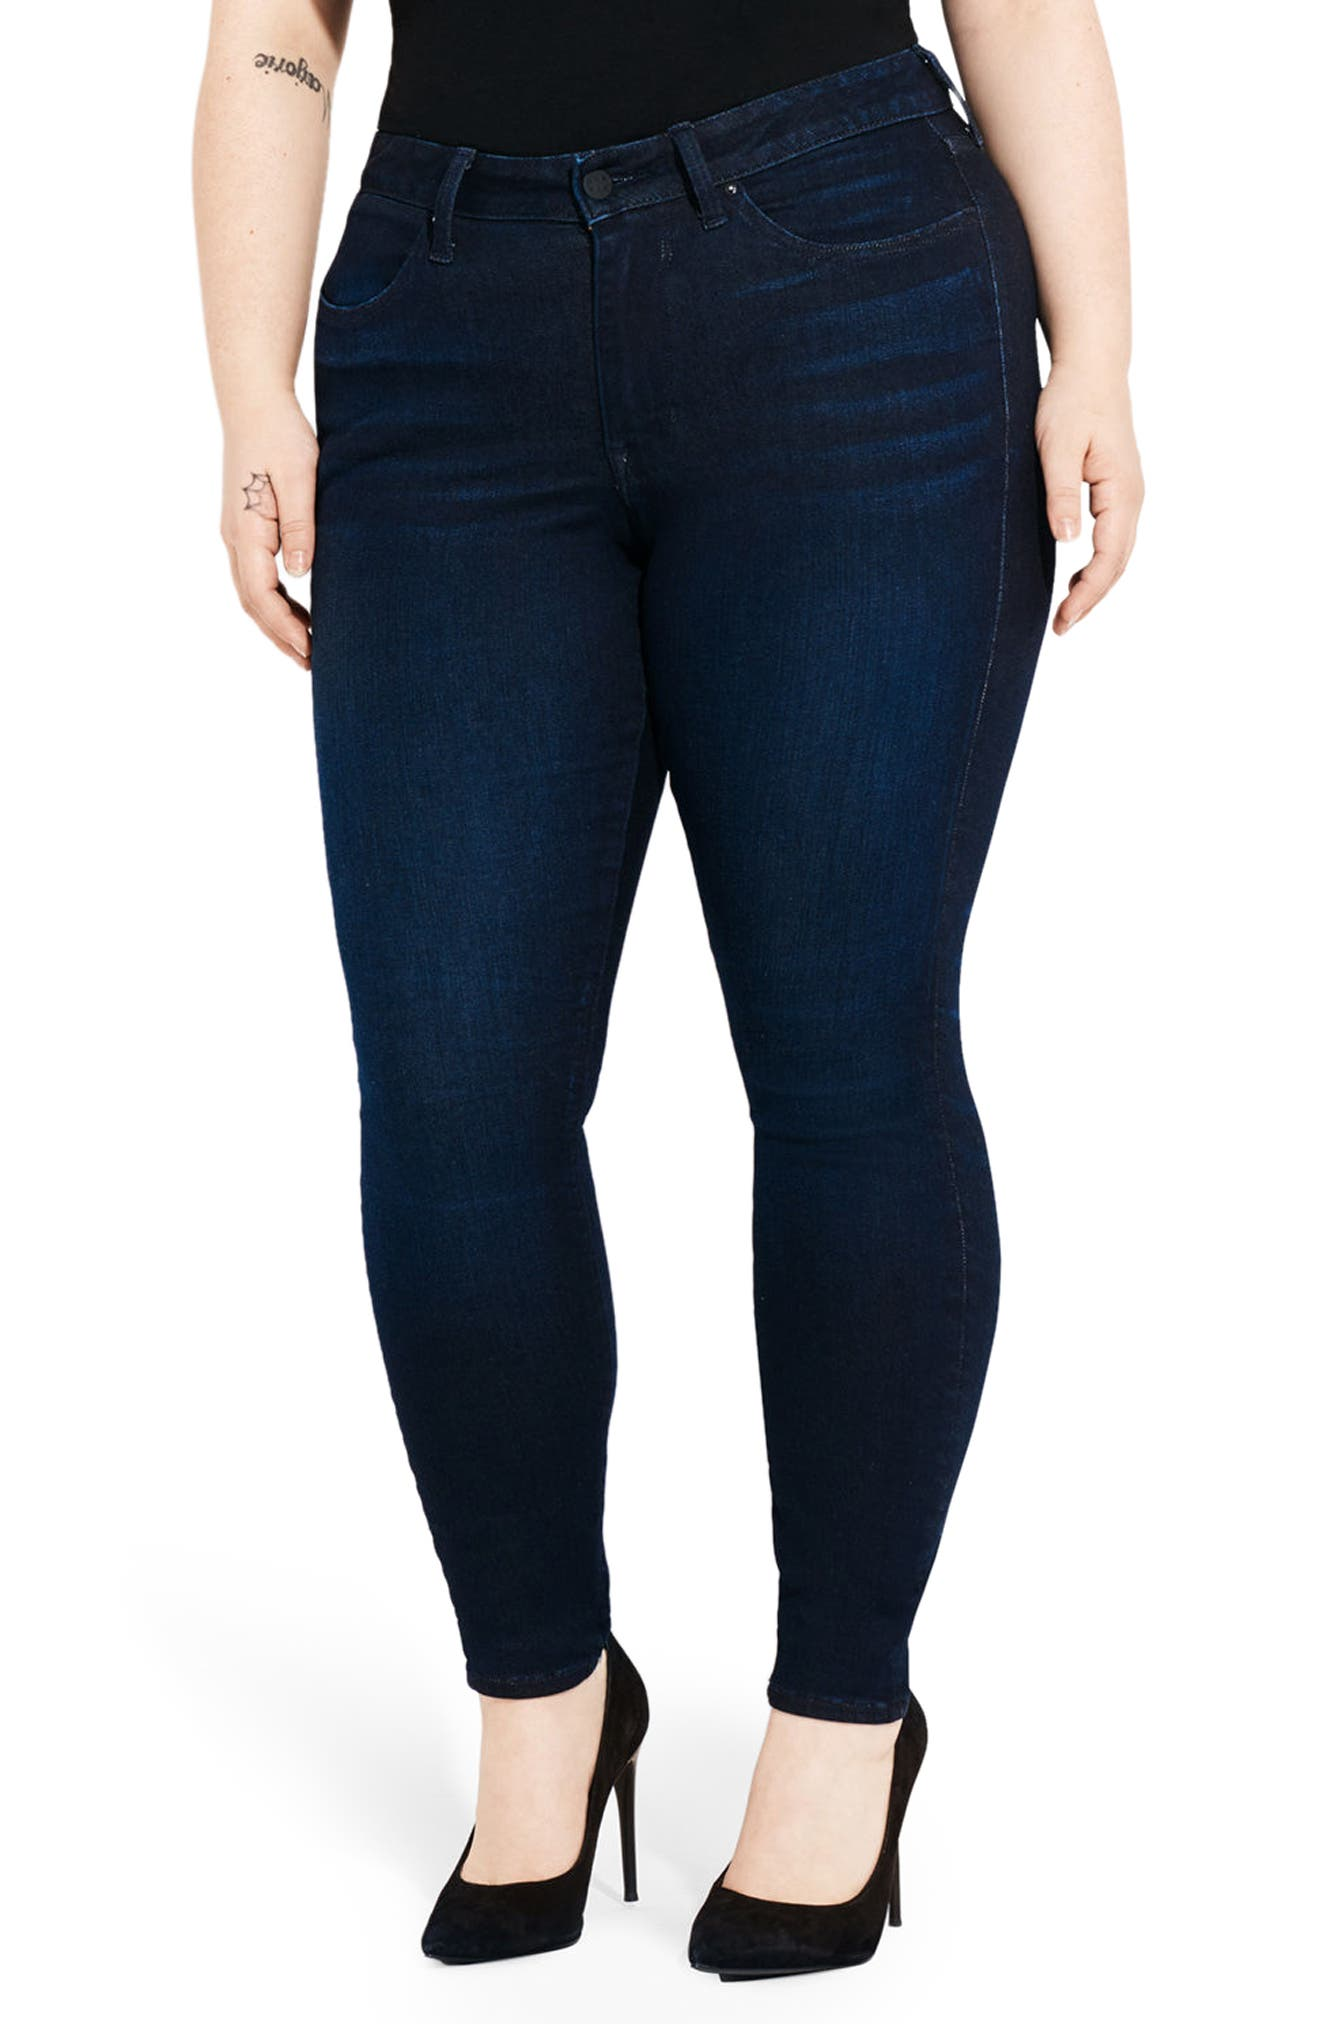 Alternate Image 4  - AYR The One Love High Waist Skinny Jeans (Jac's Jean) (Plus Size)